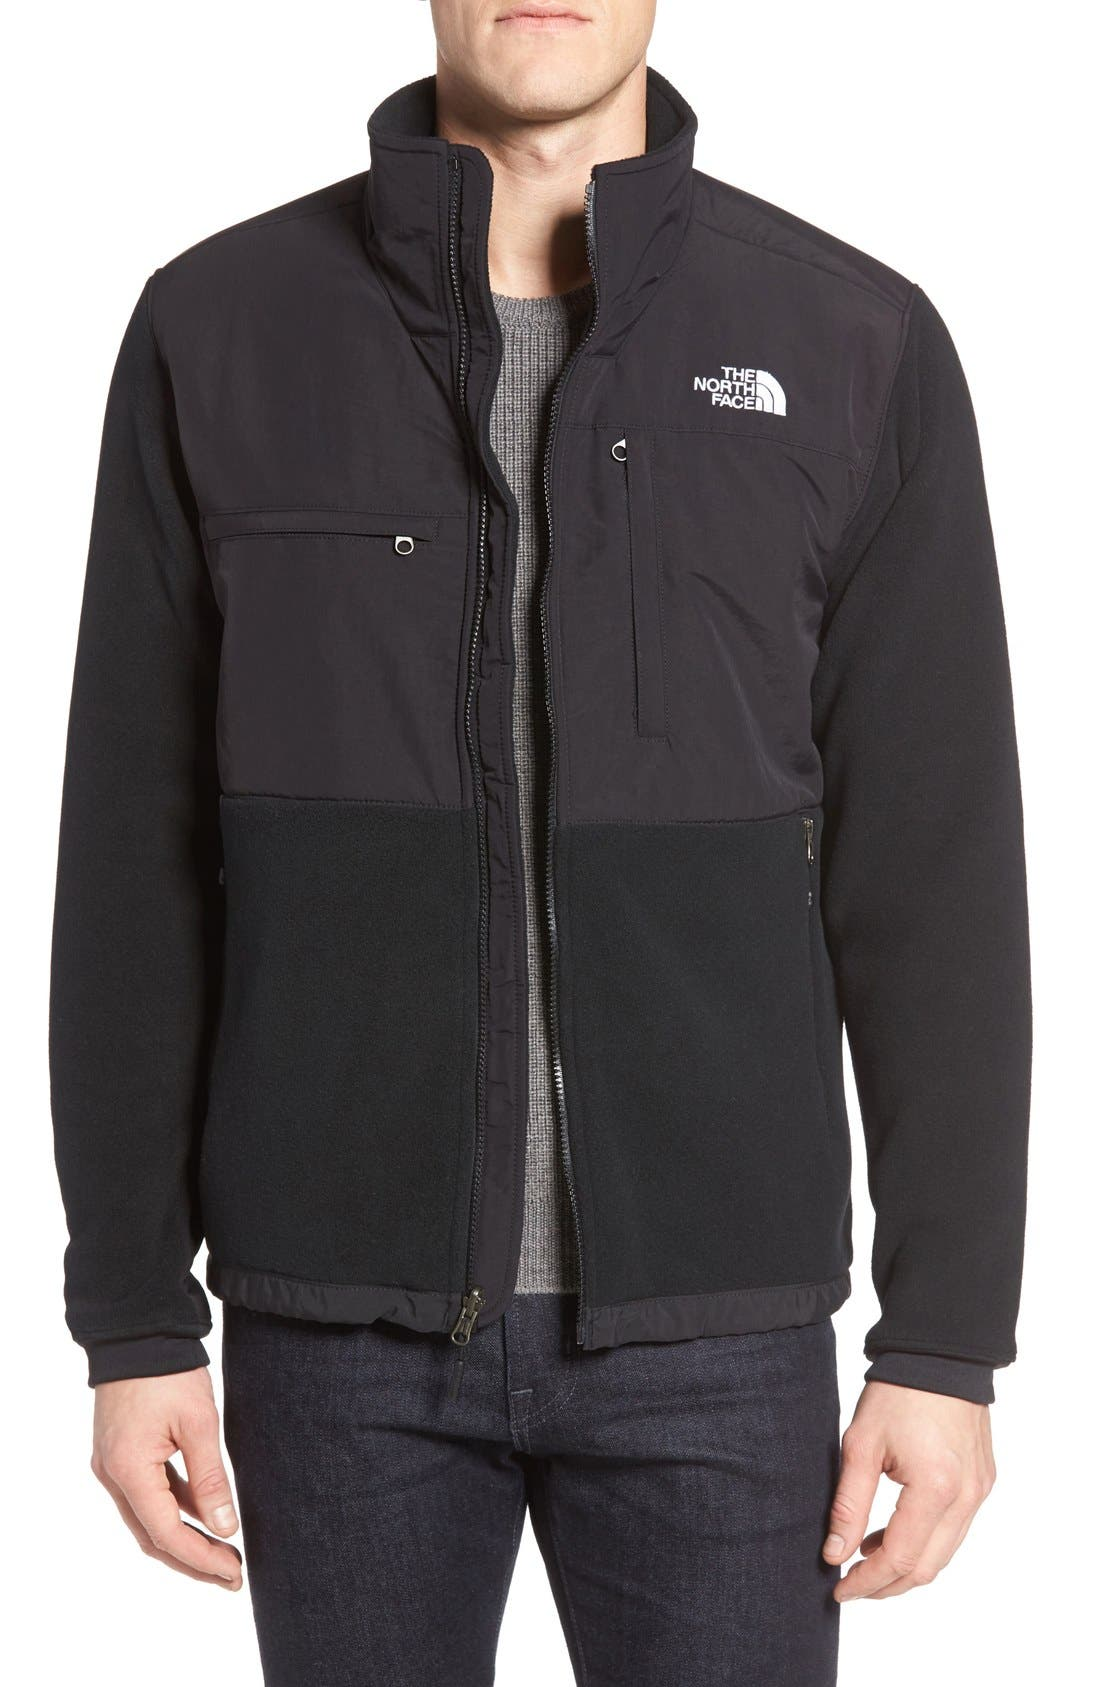 Alternate Image 1 Selected - The North Face Denali 2 Recycled Fleece Jacket